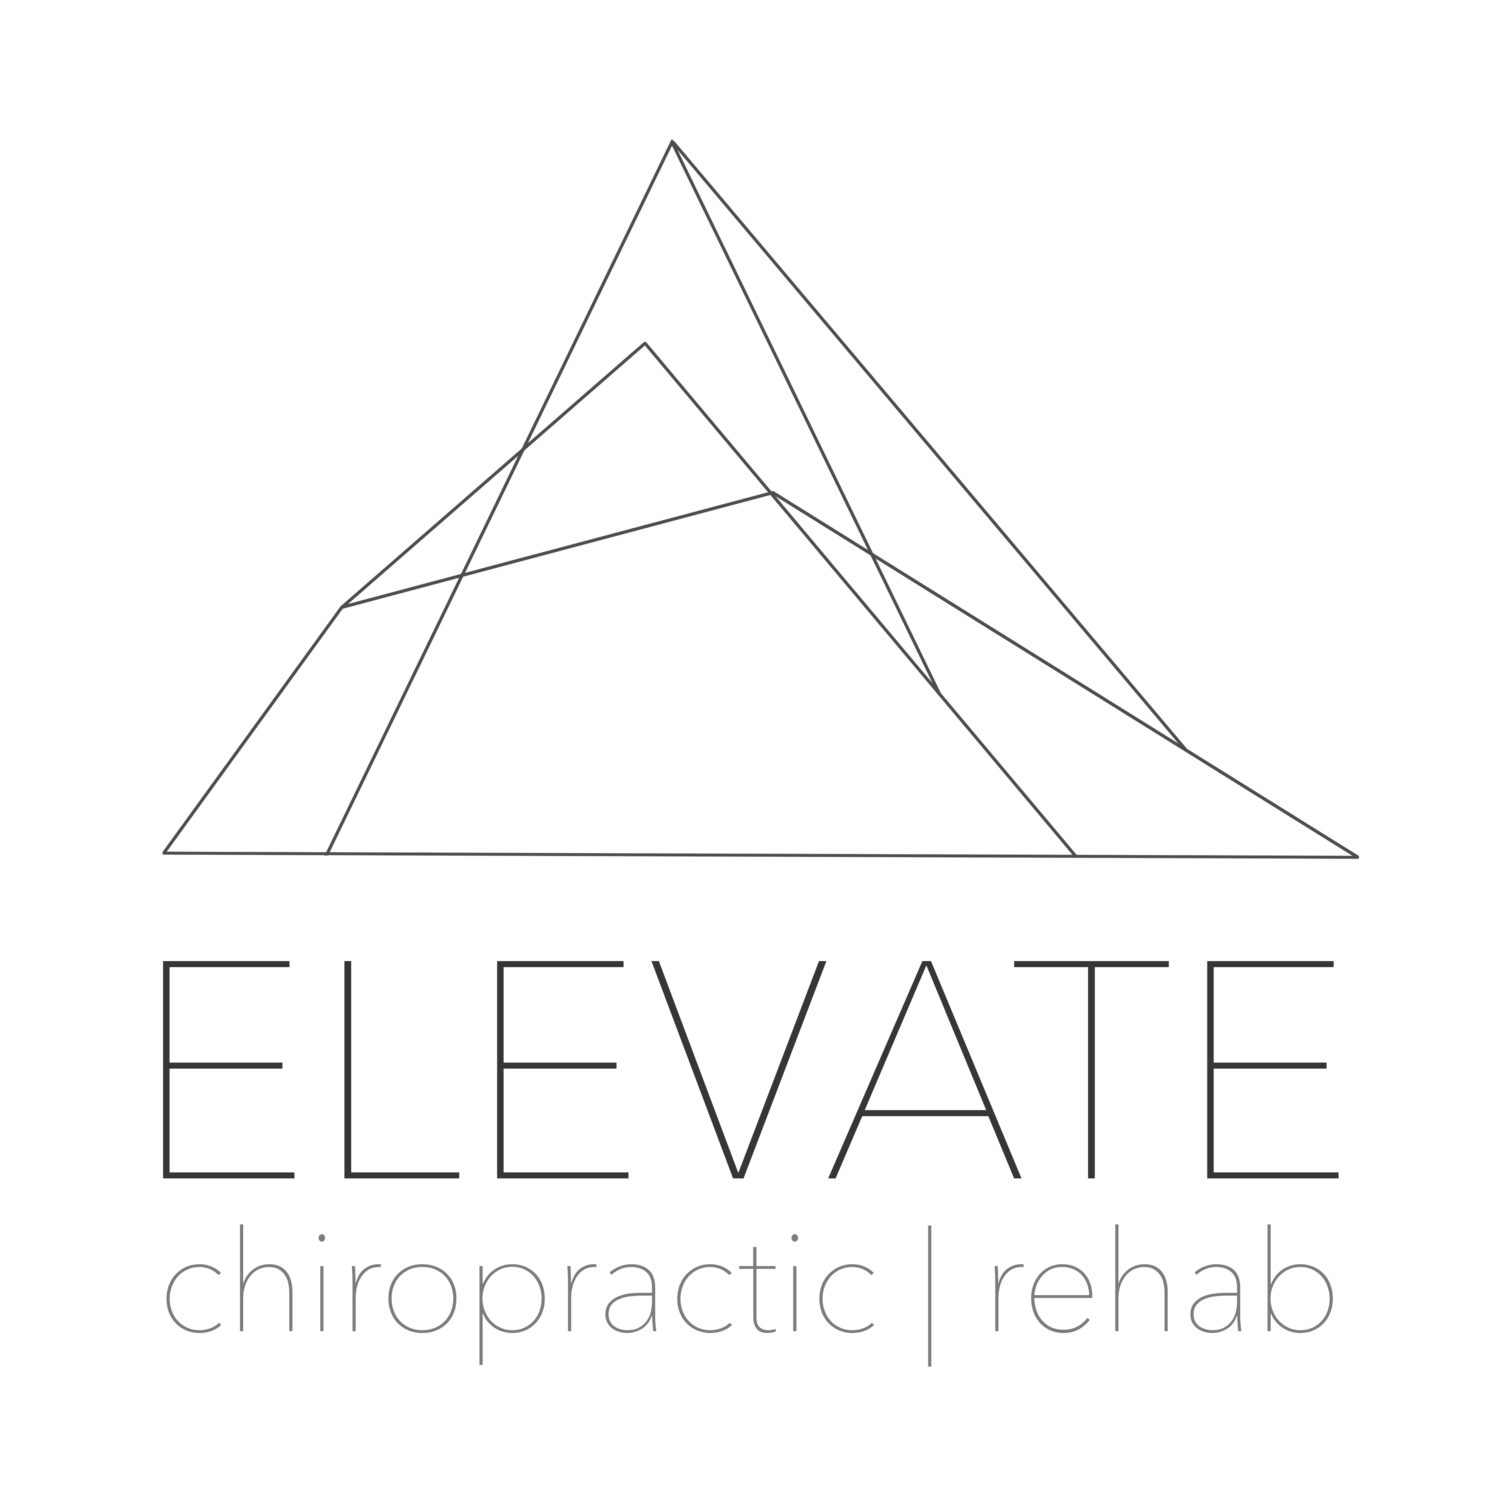 Elevate Chiropractic And Rehab